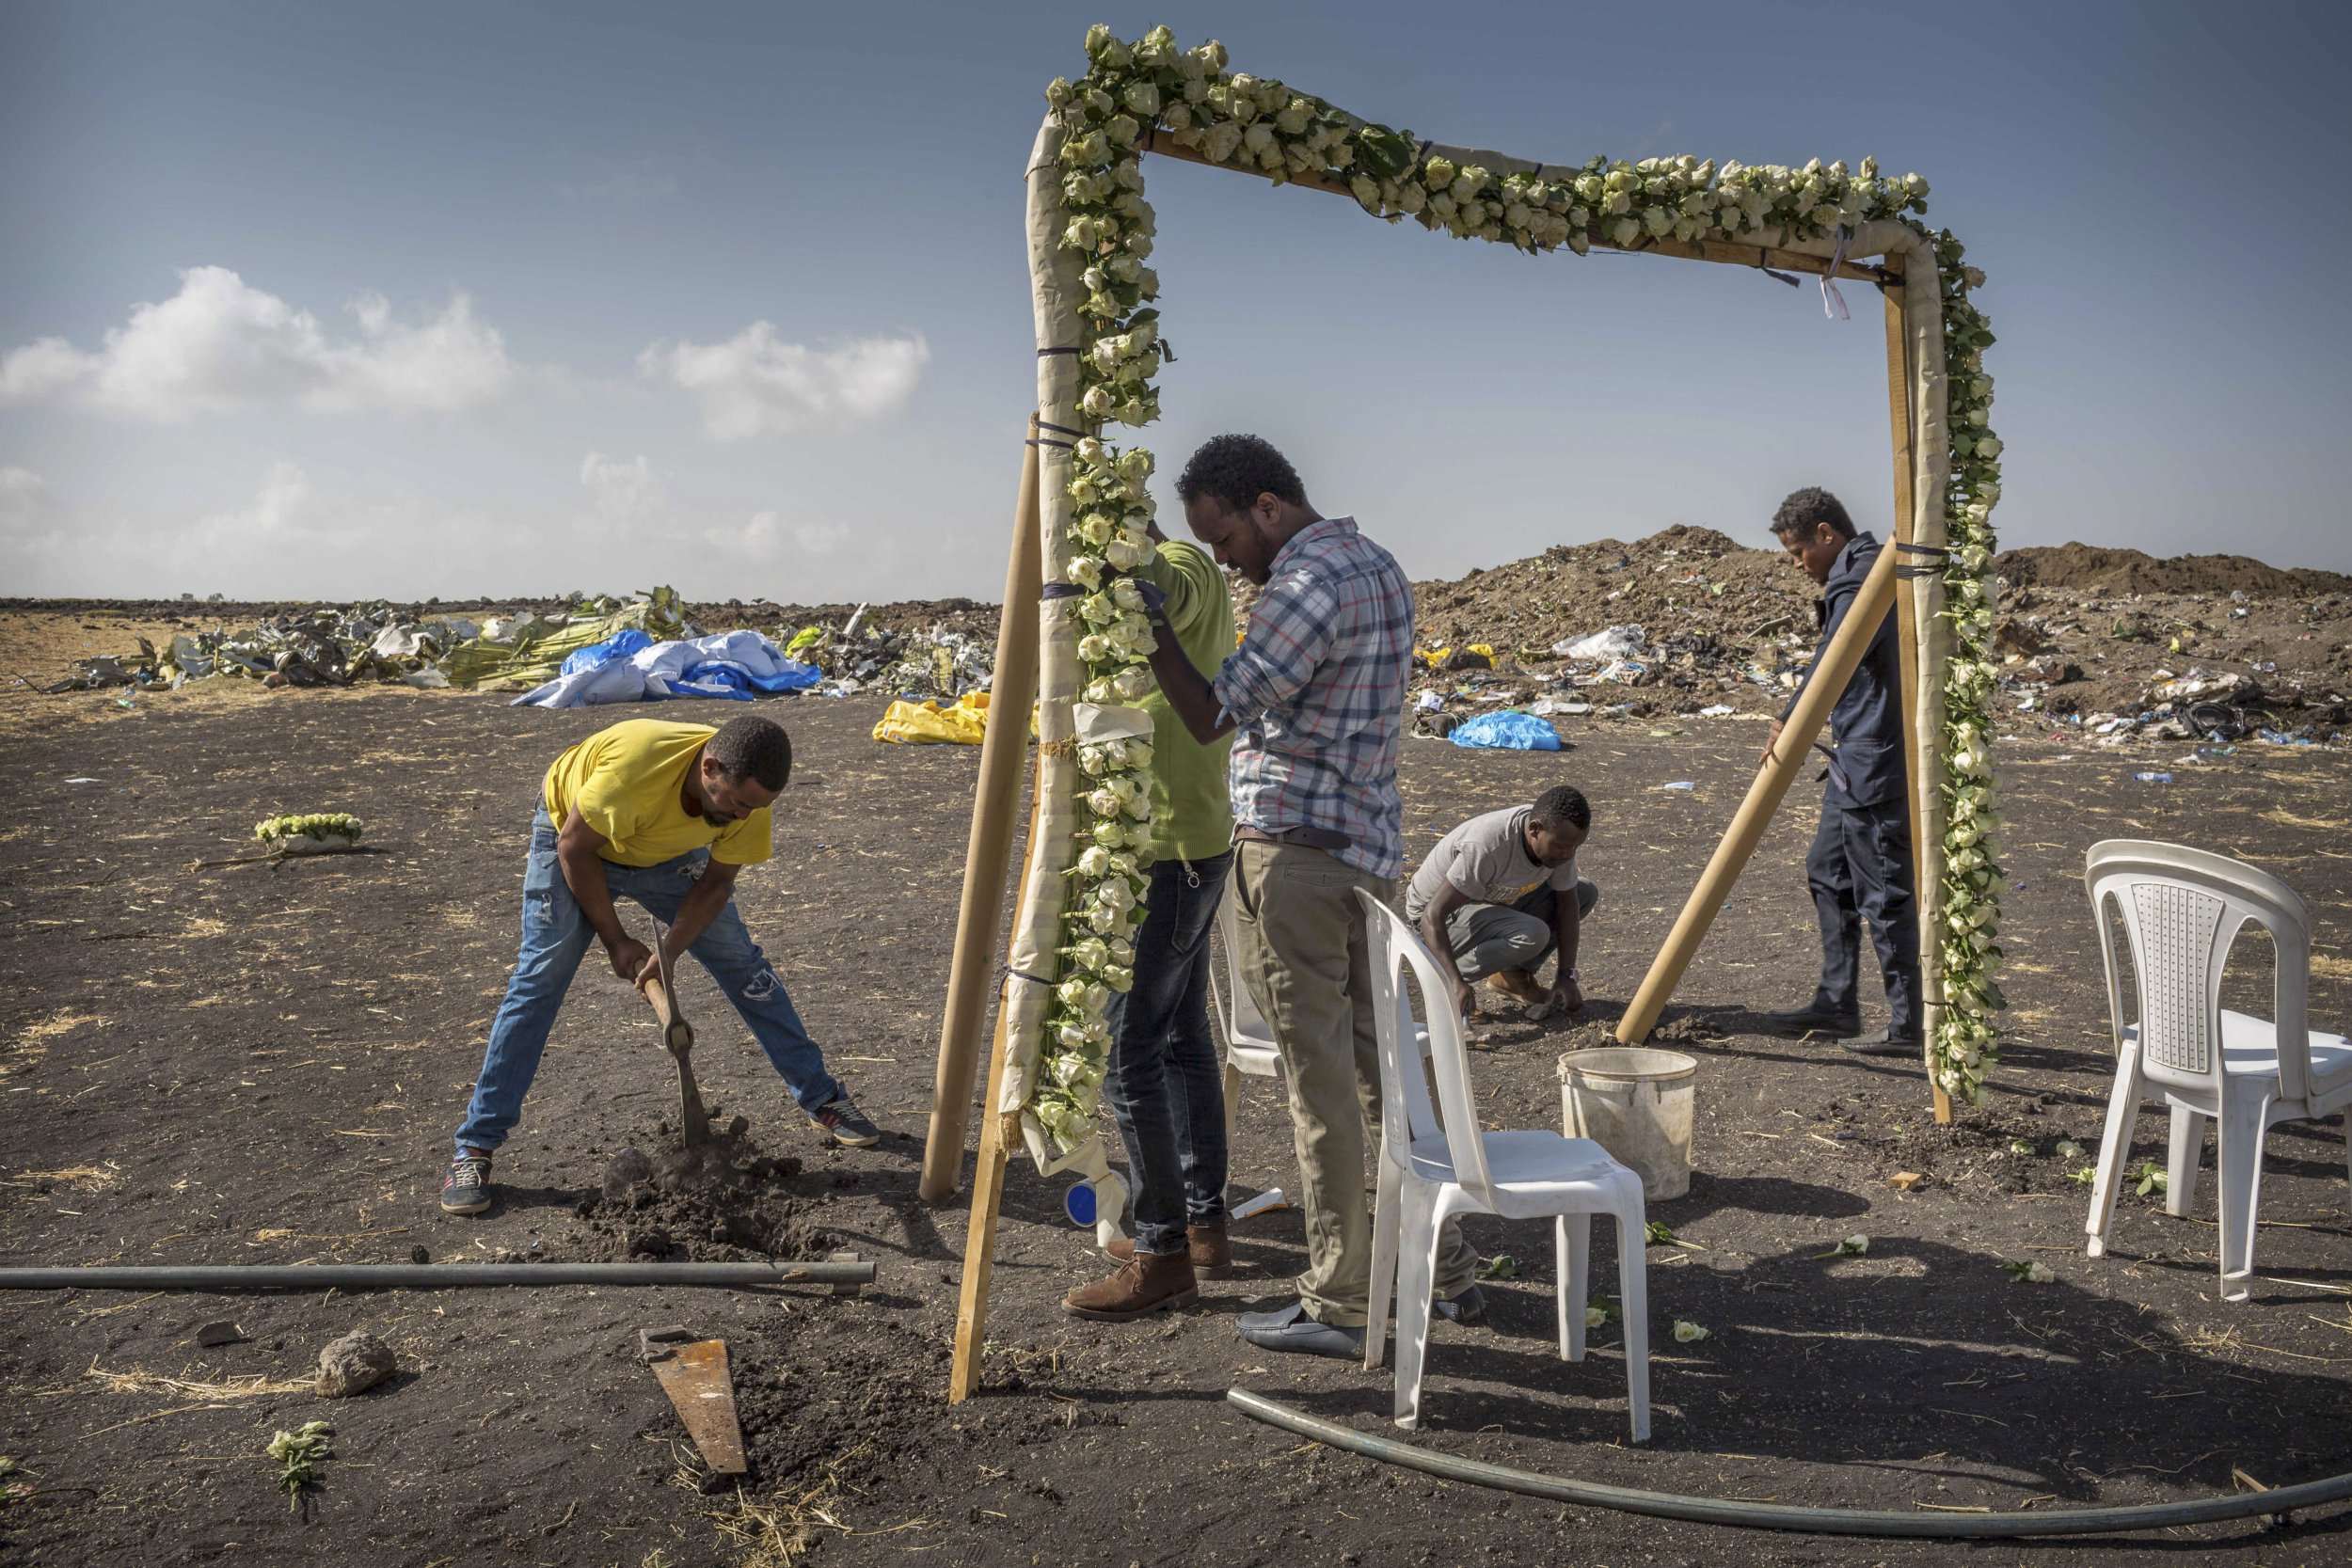 Workers erect floral installations at the scene where the Ethiopian Airlines Boeing 737 Max 8 crashed shortly after takeoff on Sunday killing all 157 on board, near Bishoftu, or Debre Zeit, south of Addis Ababa, in Ethiopia Wednesday, March 13, 2019. Much of the world, including the entire European Union, has grounded the Boeing jetliner involved in the Ethiopian Airlines crash or banned it from their airspace, leaving the United States as one of the few remaining operators of the plane involved in two deadly accidents in just five months. (AP Photo/Mulugeta Ayene)